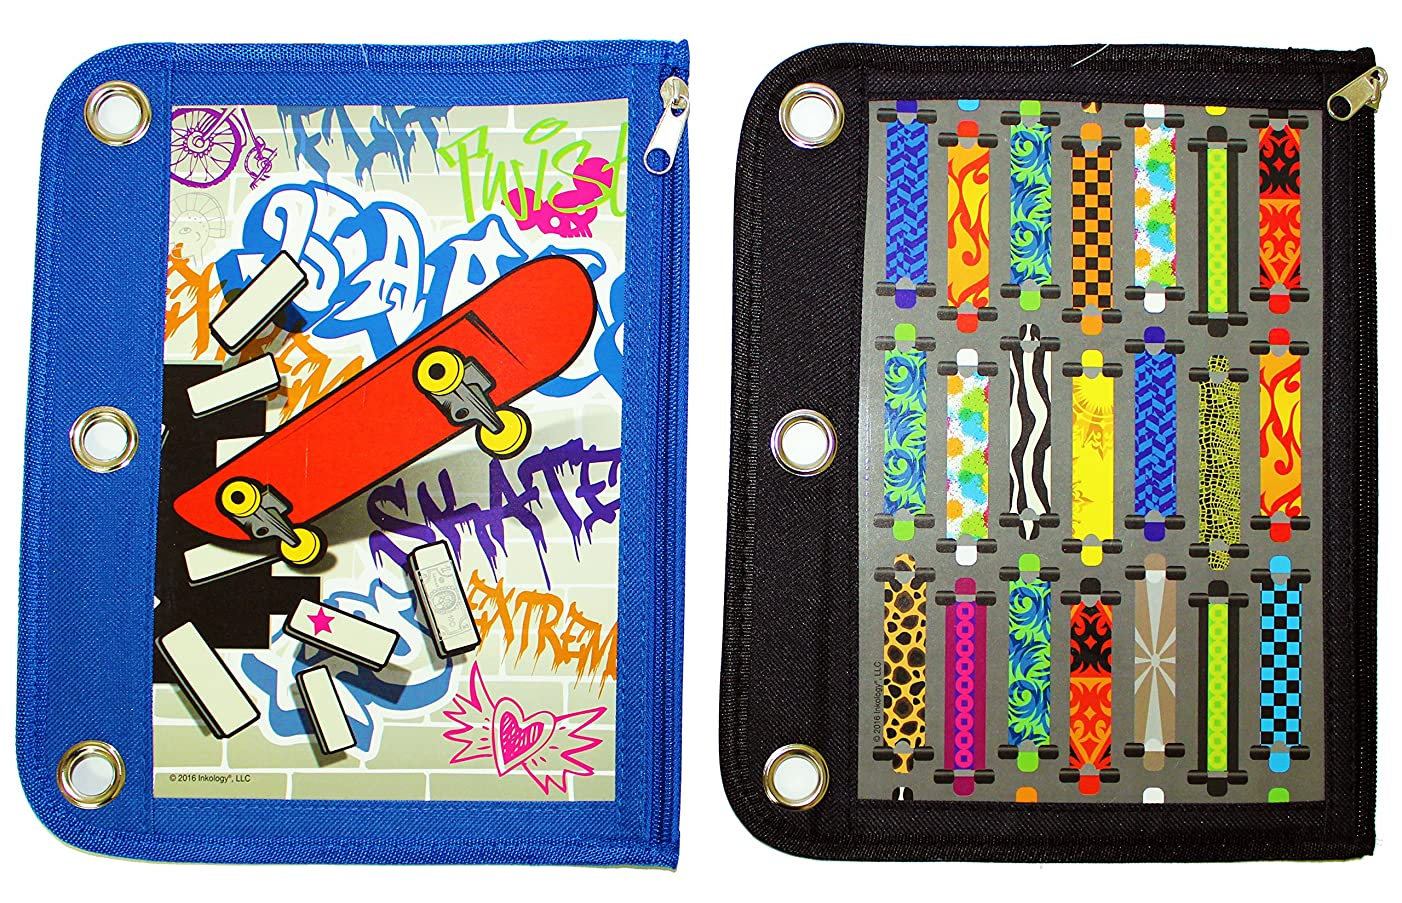 Inkology Skateboard Binder Pencil Pouch, 10.5 x 8.25 Inches, Black and Blue - Design Will Vary (437-0)